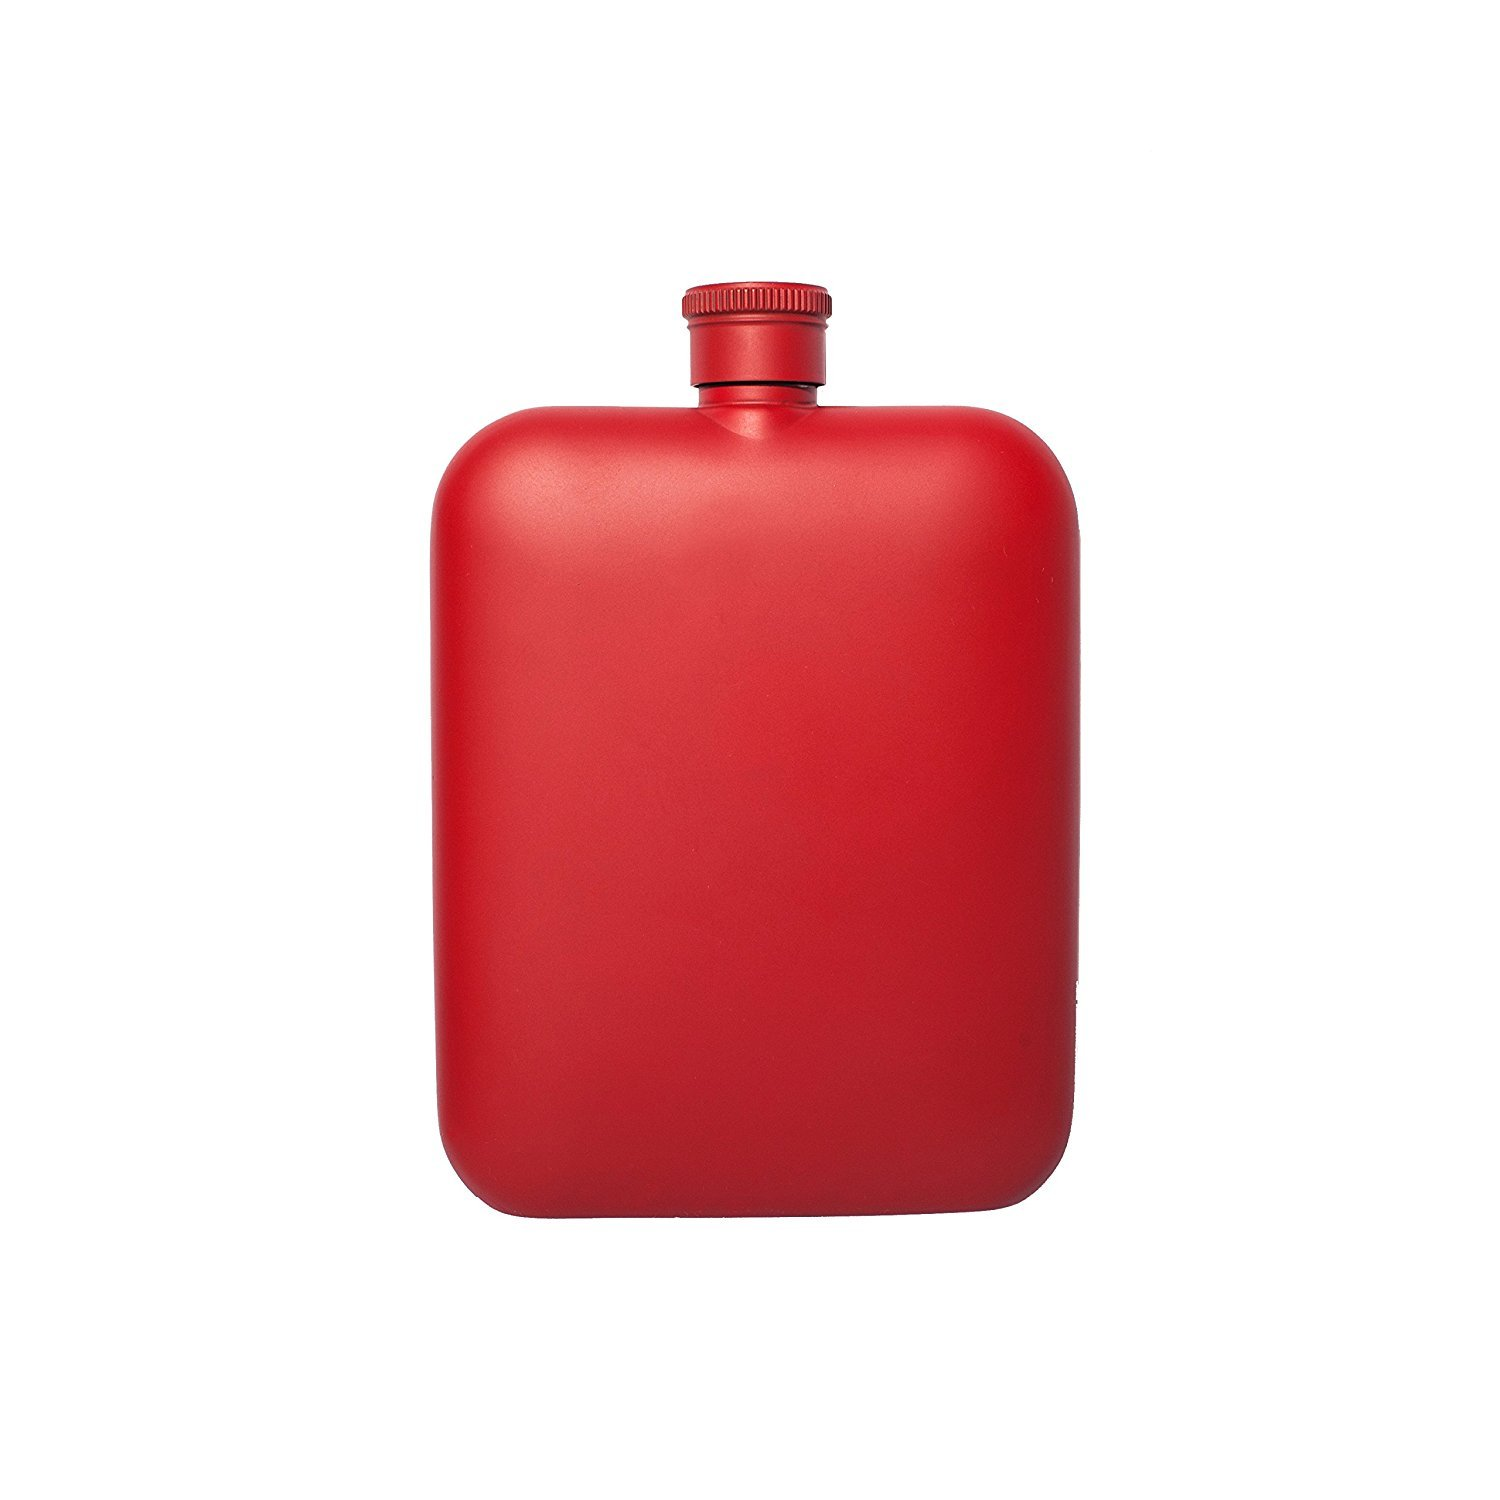 Flask with Canvas Carrier, Red-34005